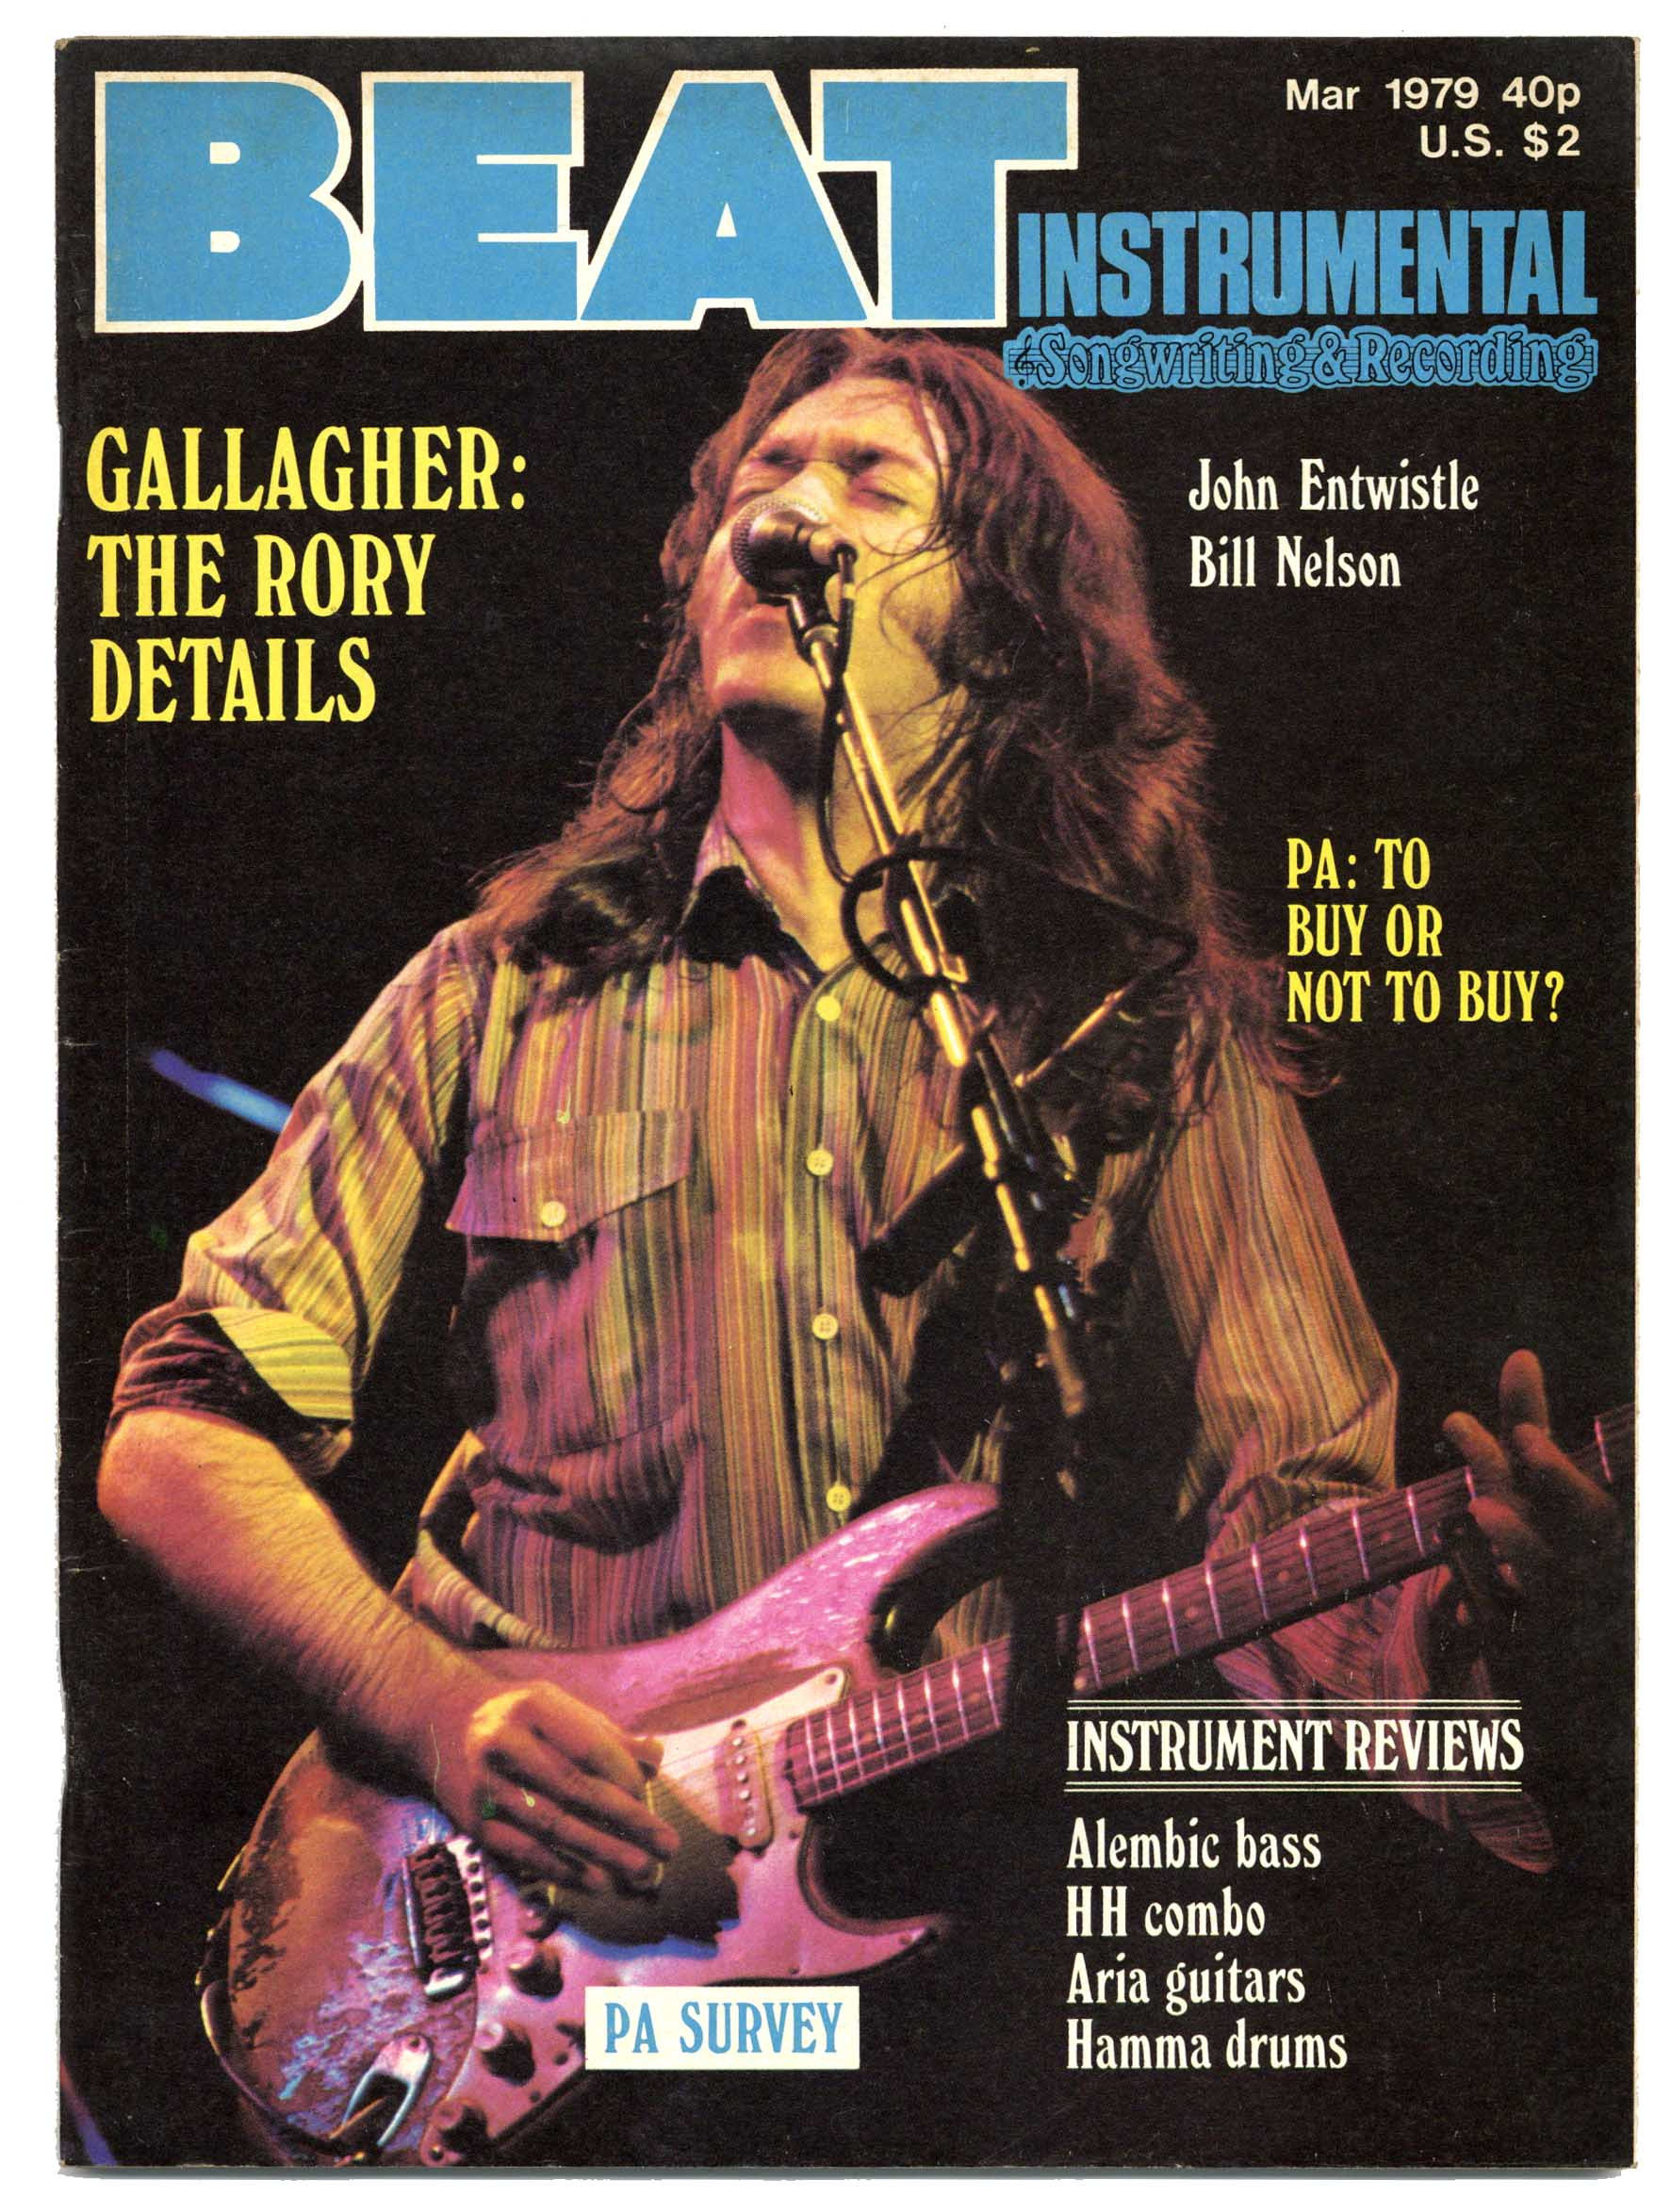 Johnny Winter - Albino & Romina Power - Página 2 BEAT-INSTRUMENTAL-Magazine-No-149-March-1979-Rory-Gallagher-John-Entwistle-Jim-McCarty-14903-p